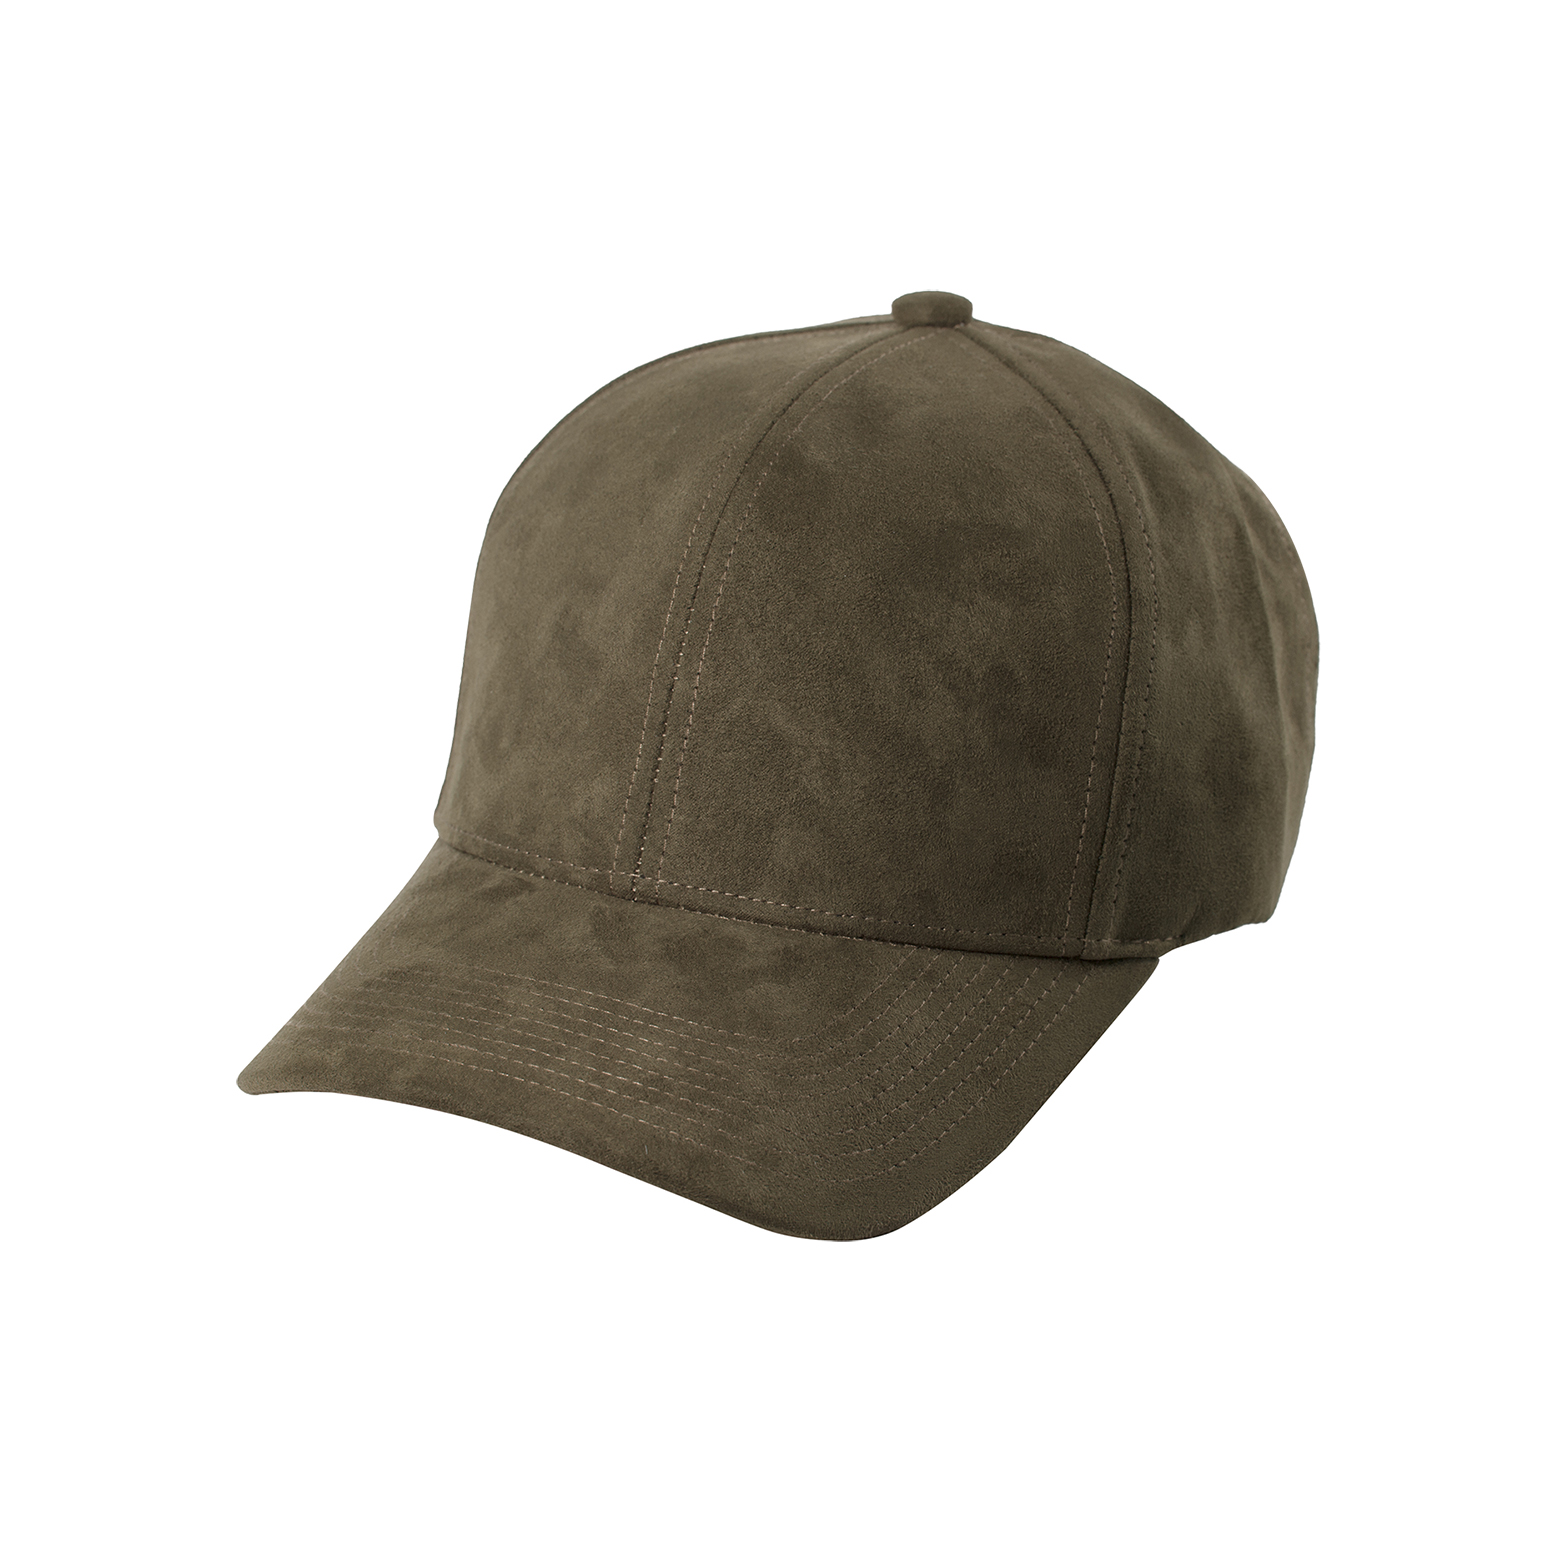 BASEBALL CAP TAUPE SUEDE FRONT SIDE